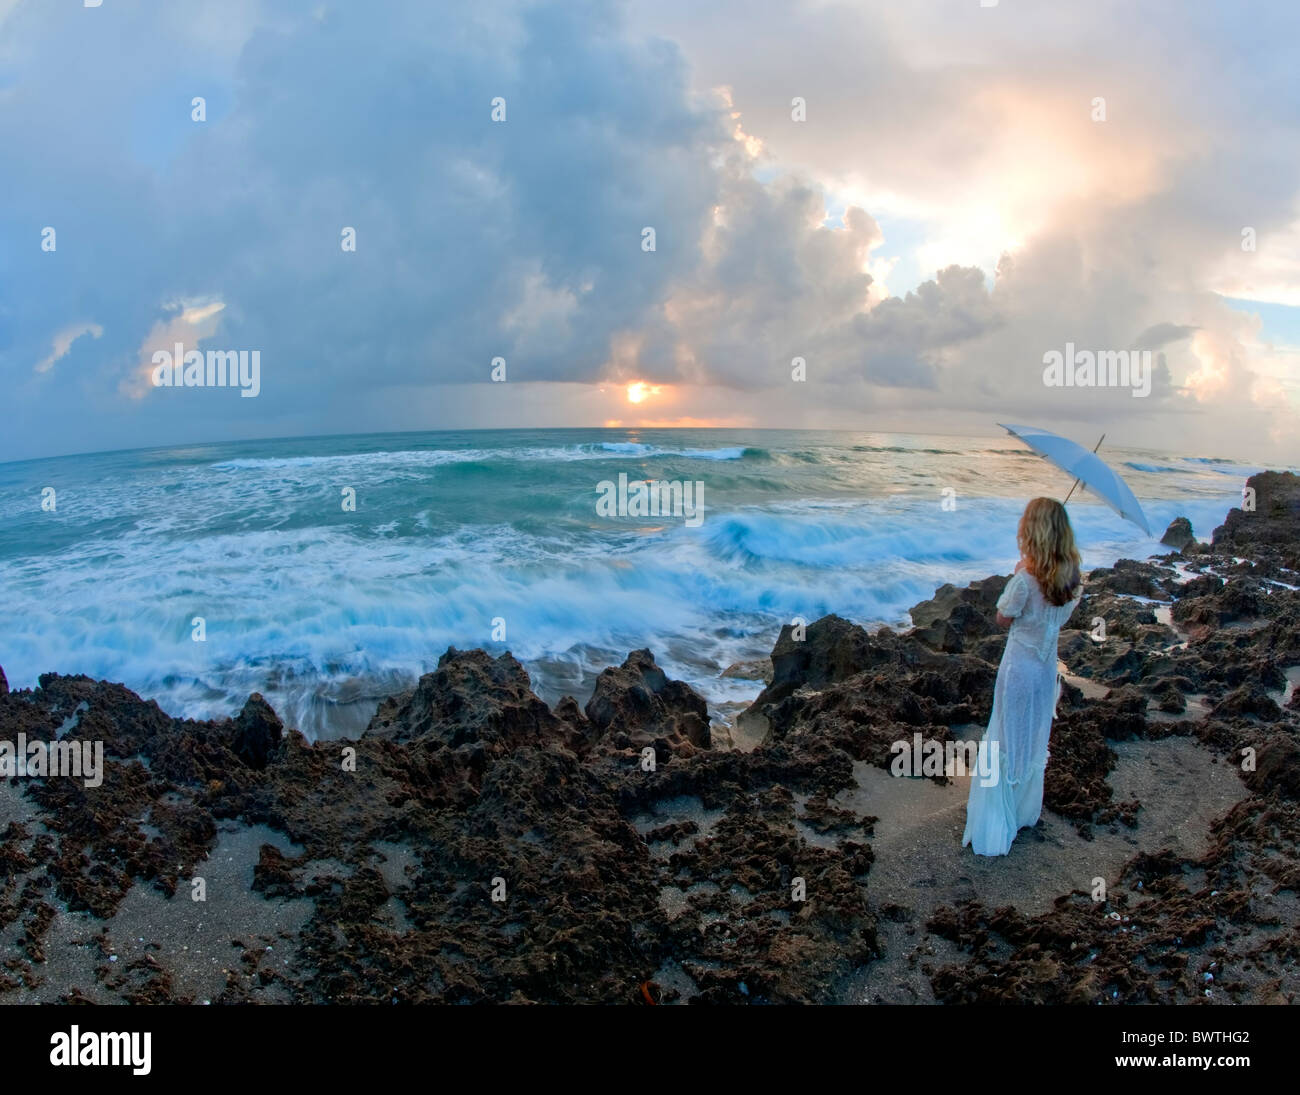 Young woman holding umbrella standing on rocks near ocean - Stock Image